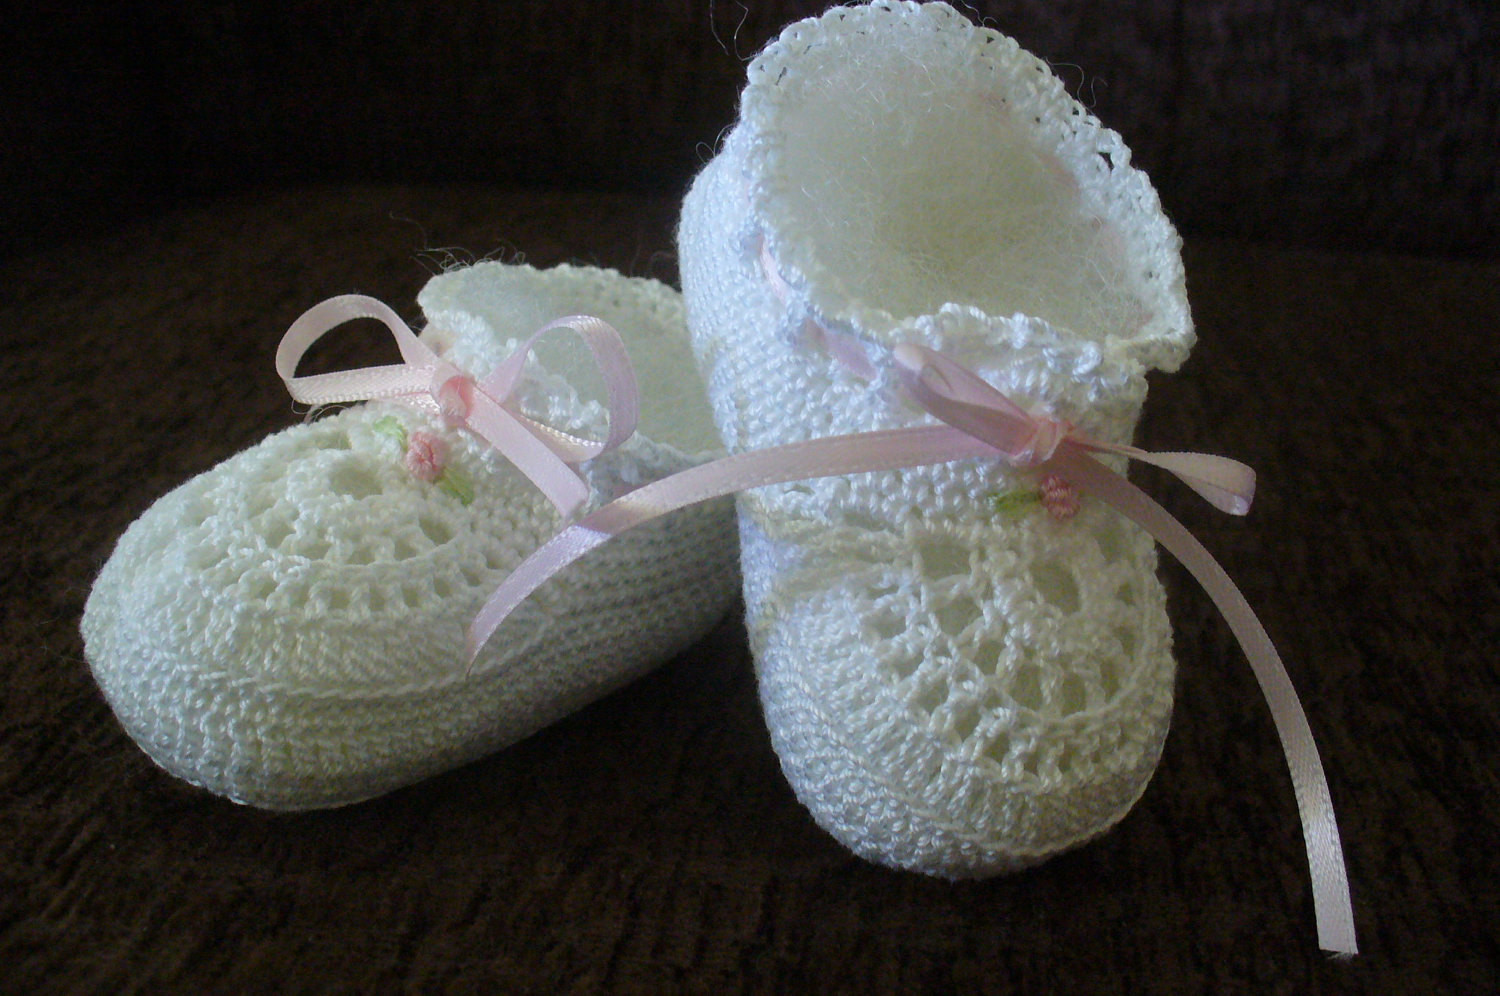 Lovely Hand Crocheted Old Fashioned Cotton Thread Baby Girl Booties Cotton Crochet Threads Of New Lizbeth Cotton Crochet Tatting Thread Size 3 Color Cotton Crochet Threads